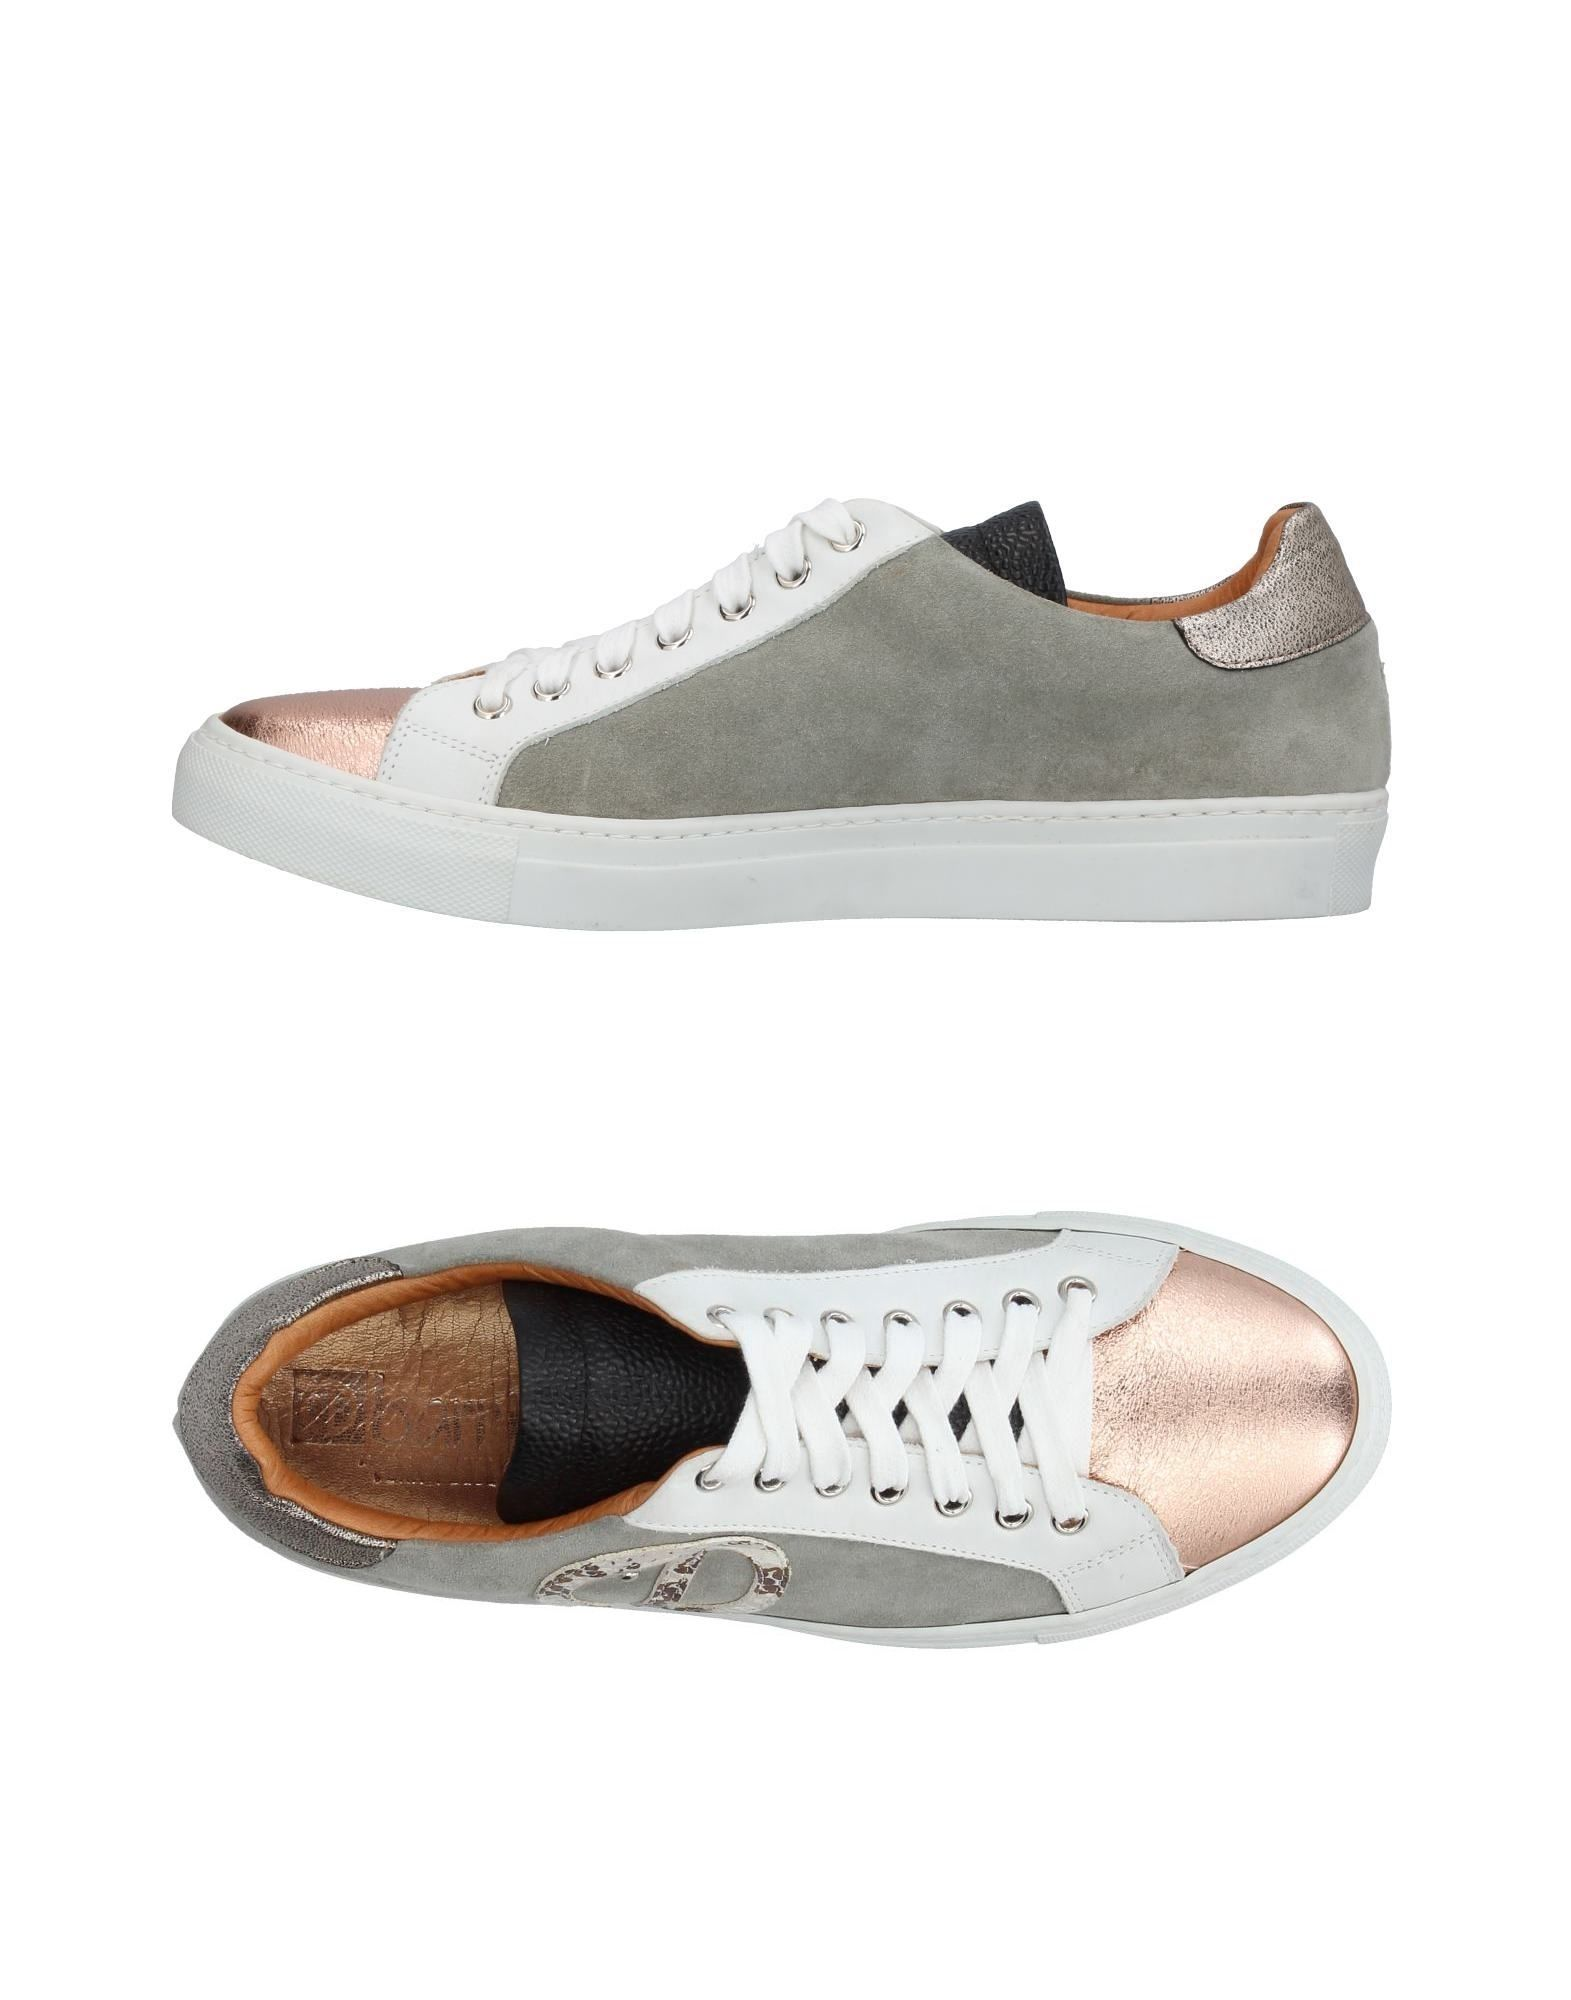 Sneakers Ebarrito Homme - Sneakers Ebarrito sur